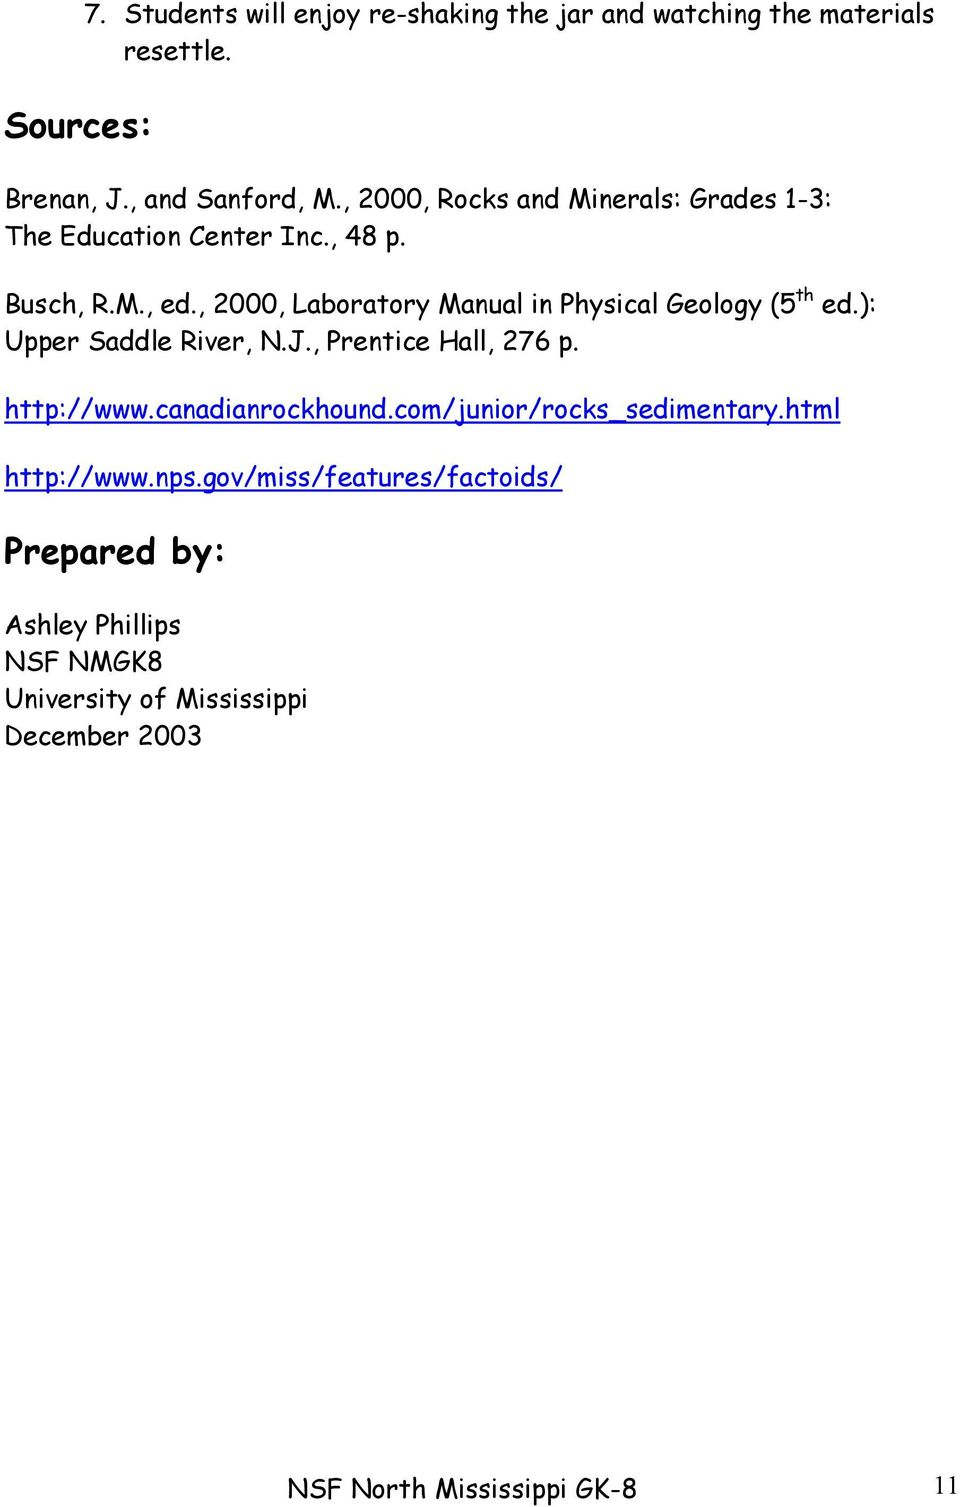 , 2000, Laboratory Manual in Physical Geology (5 th ed.): Upper Saddle River, N.J., Prentice Hall, 276 p. http://www.